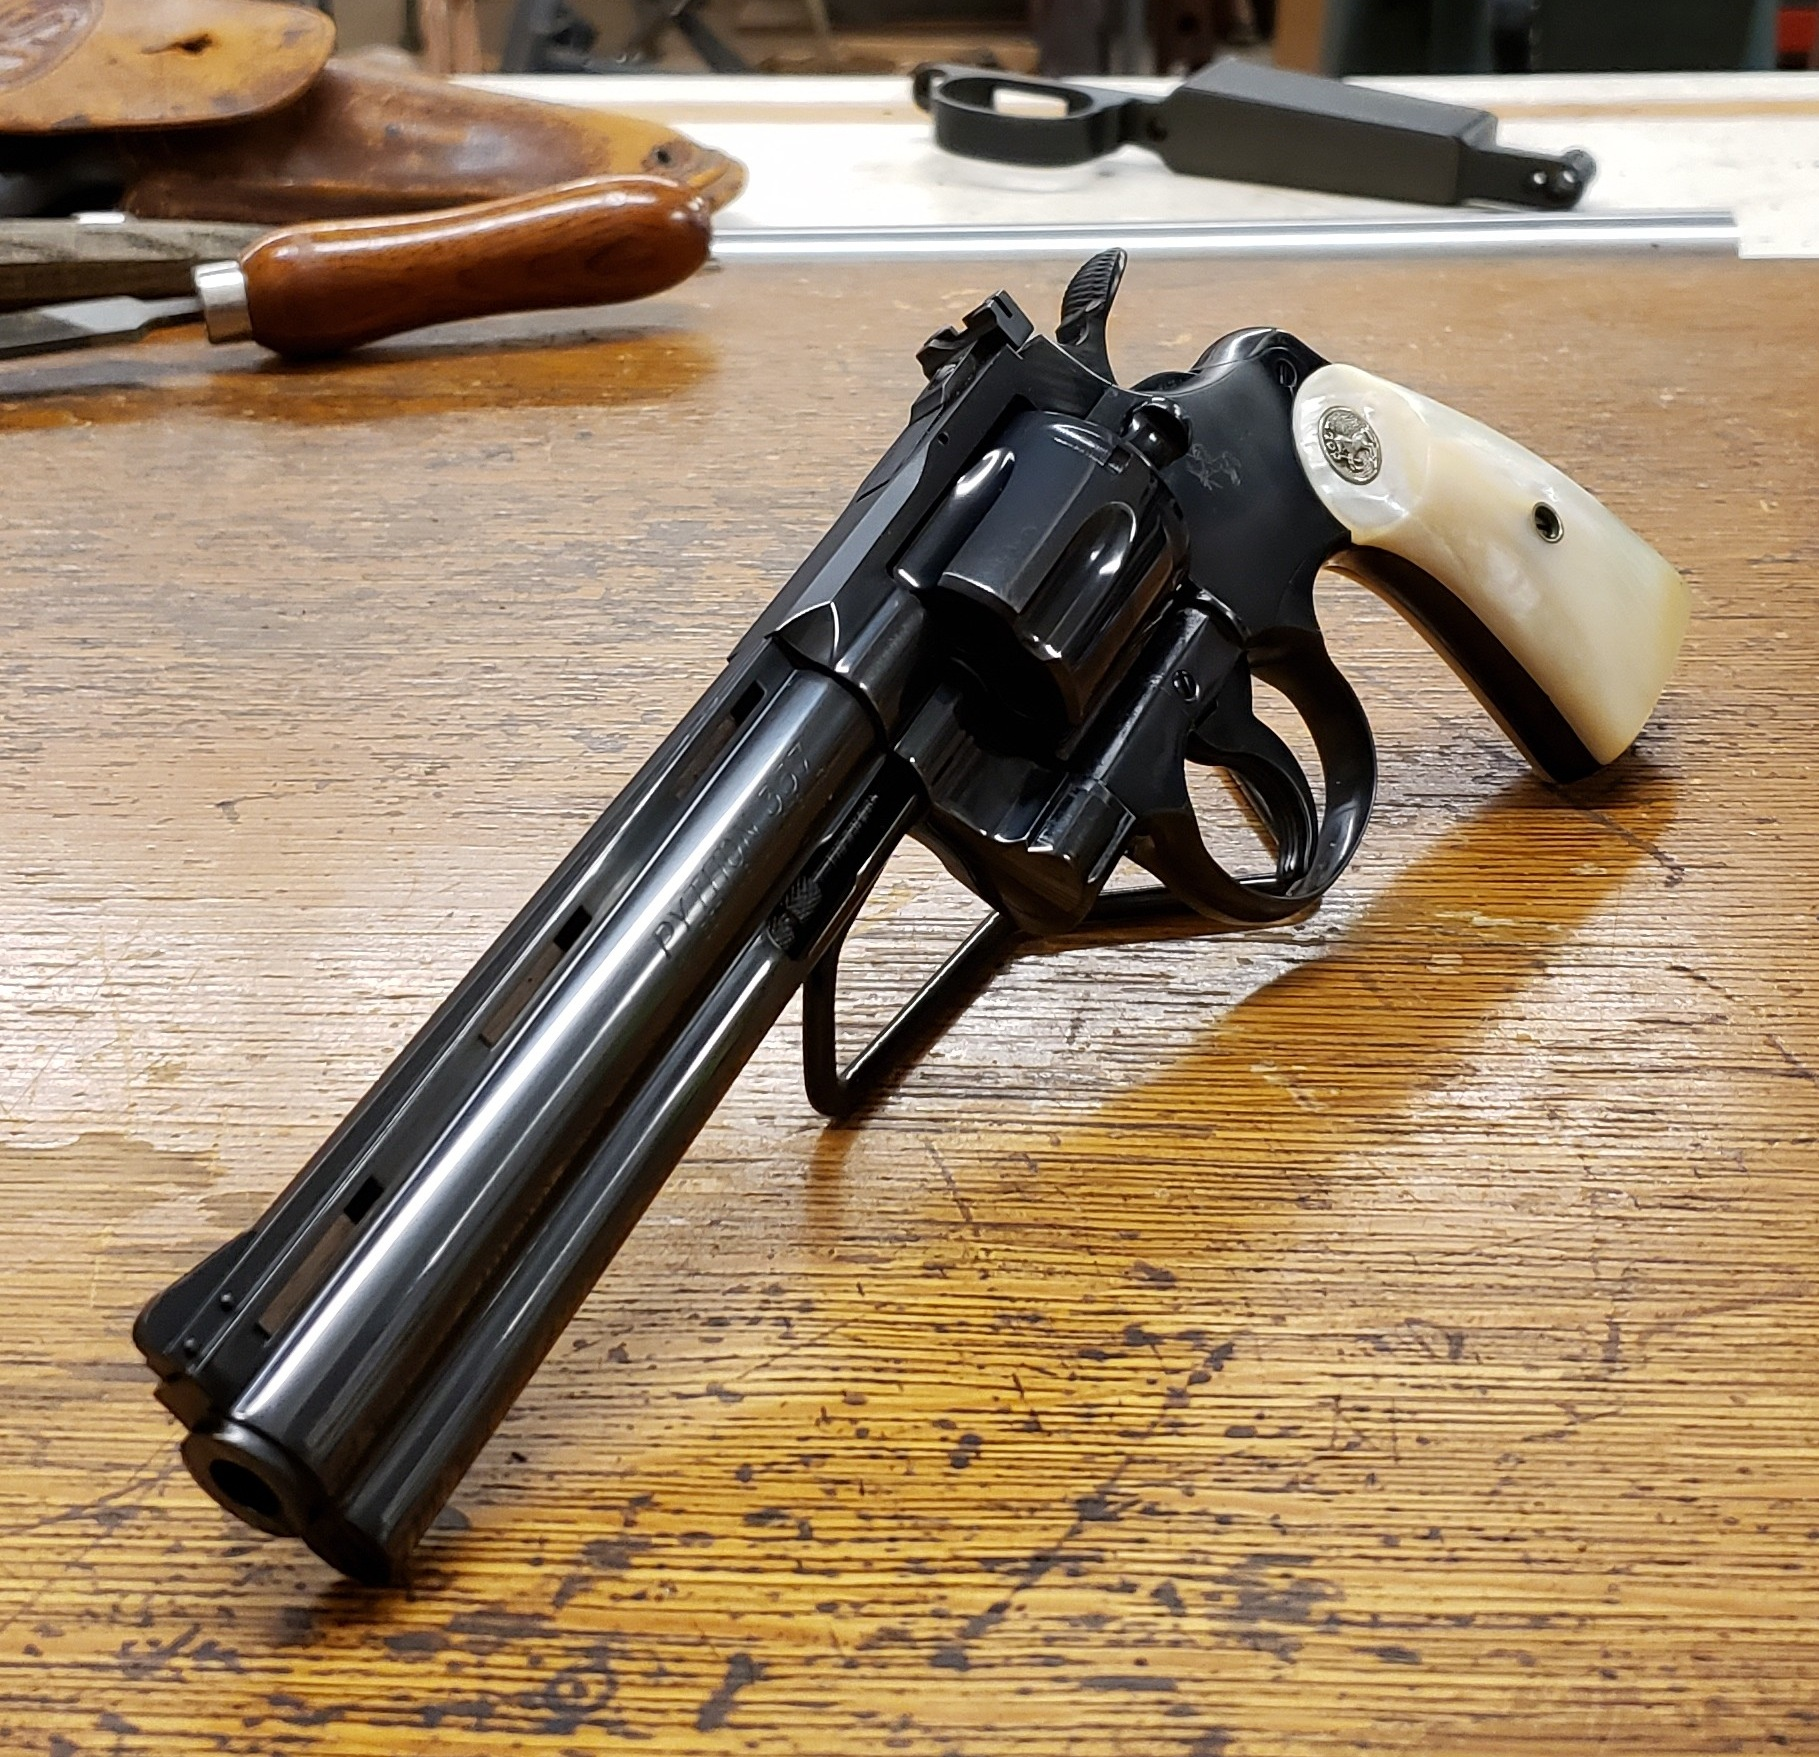 RESTORE - We specialize in returning antique and vintage firearms to their optimal condition. Whether it be rust, fire damage, or a broken stock, we can restore your old firearm. Don't let an old family heirloom continue collecting dust. Bring your firearm in and we will give you an honest no-pressure assessment of the work and cost involved in the project.